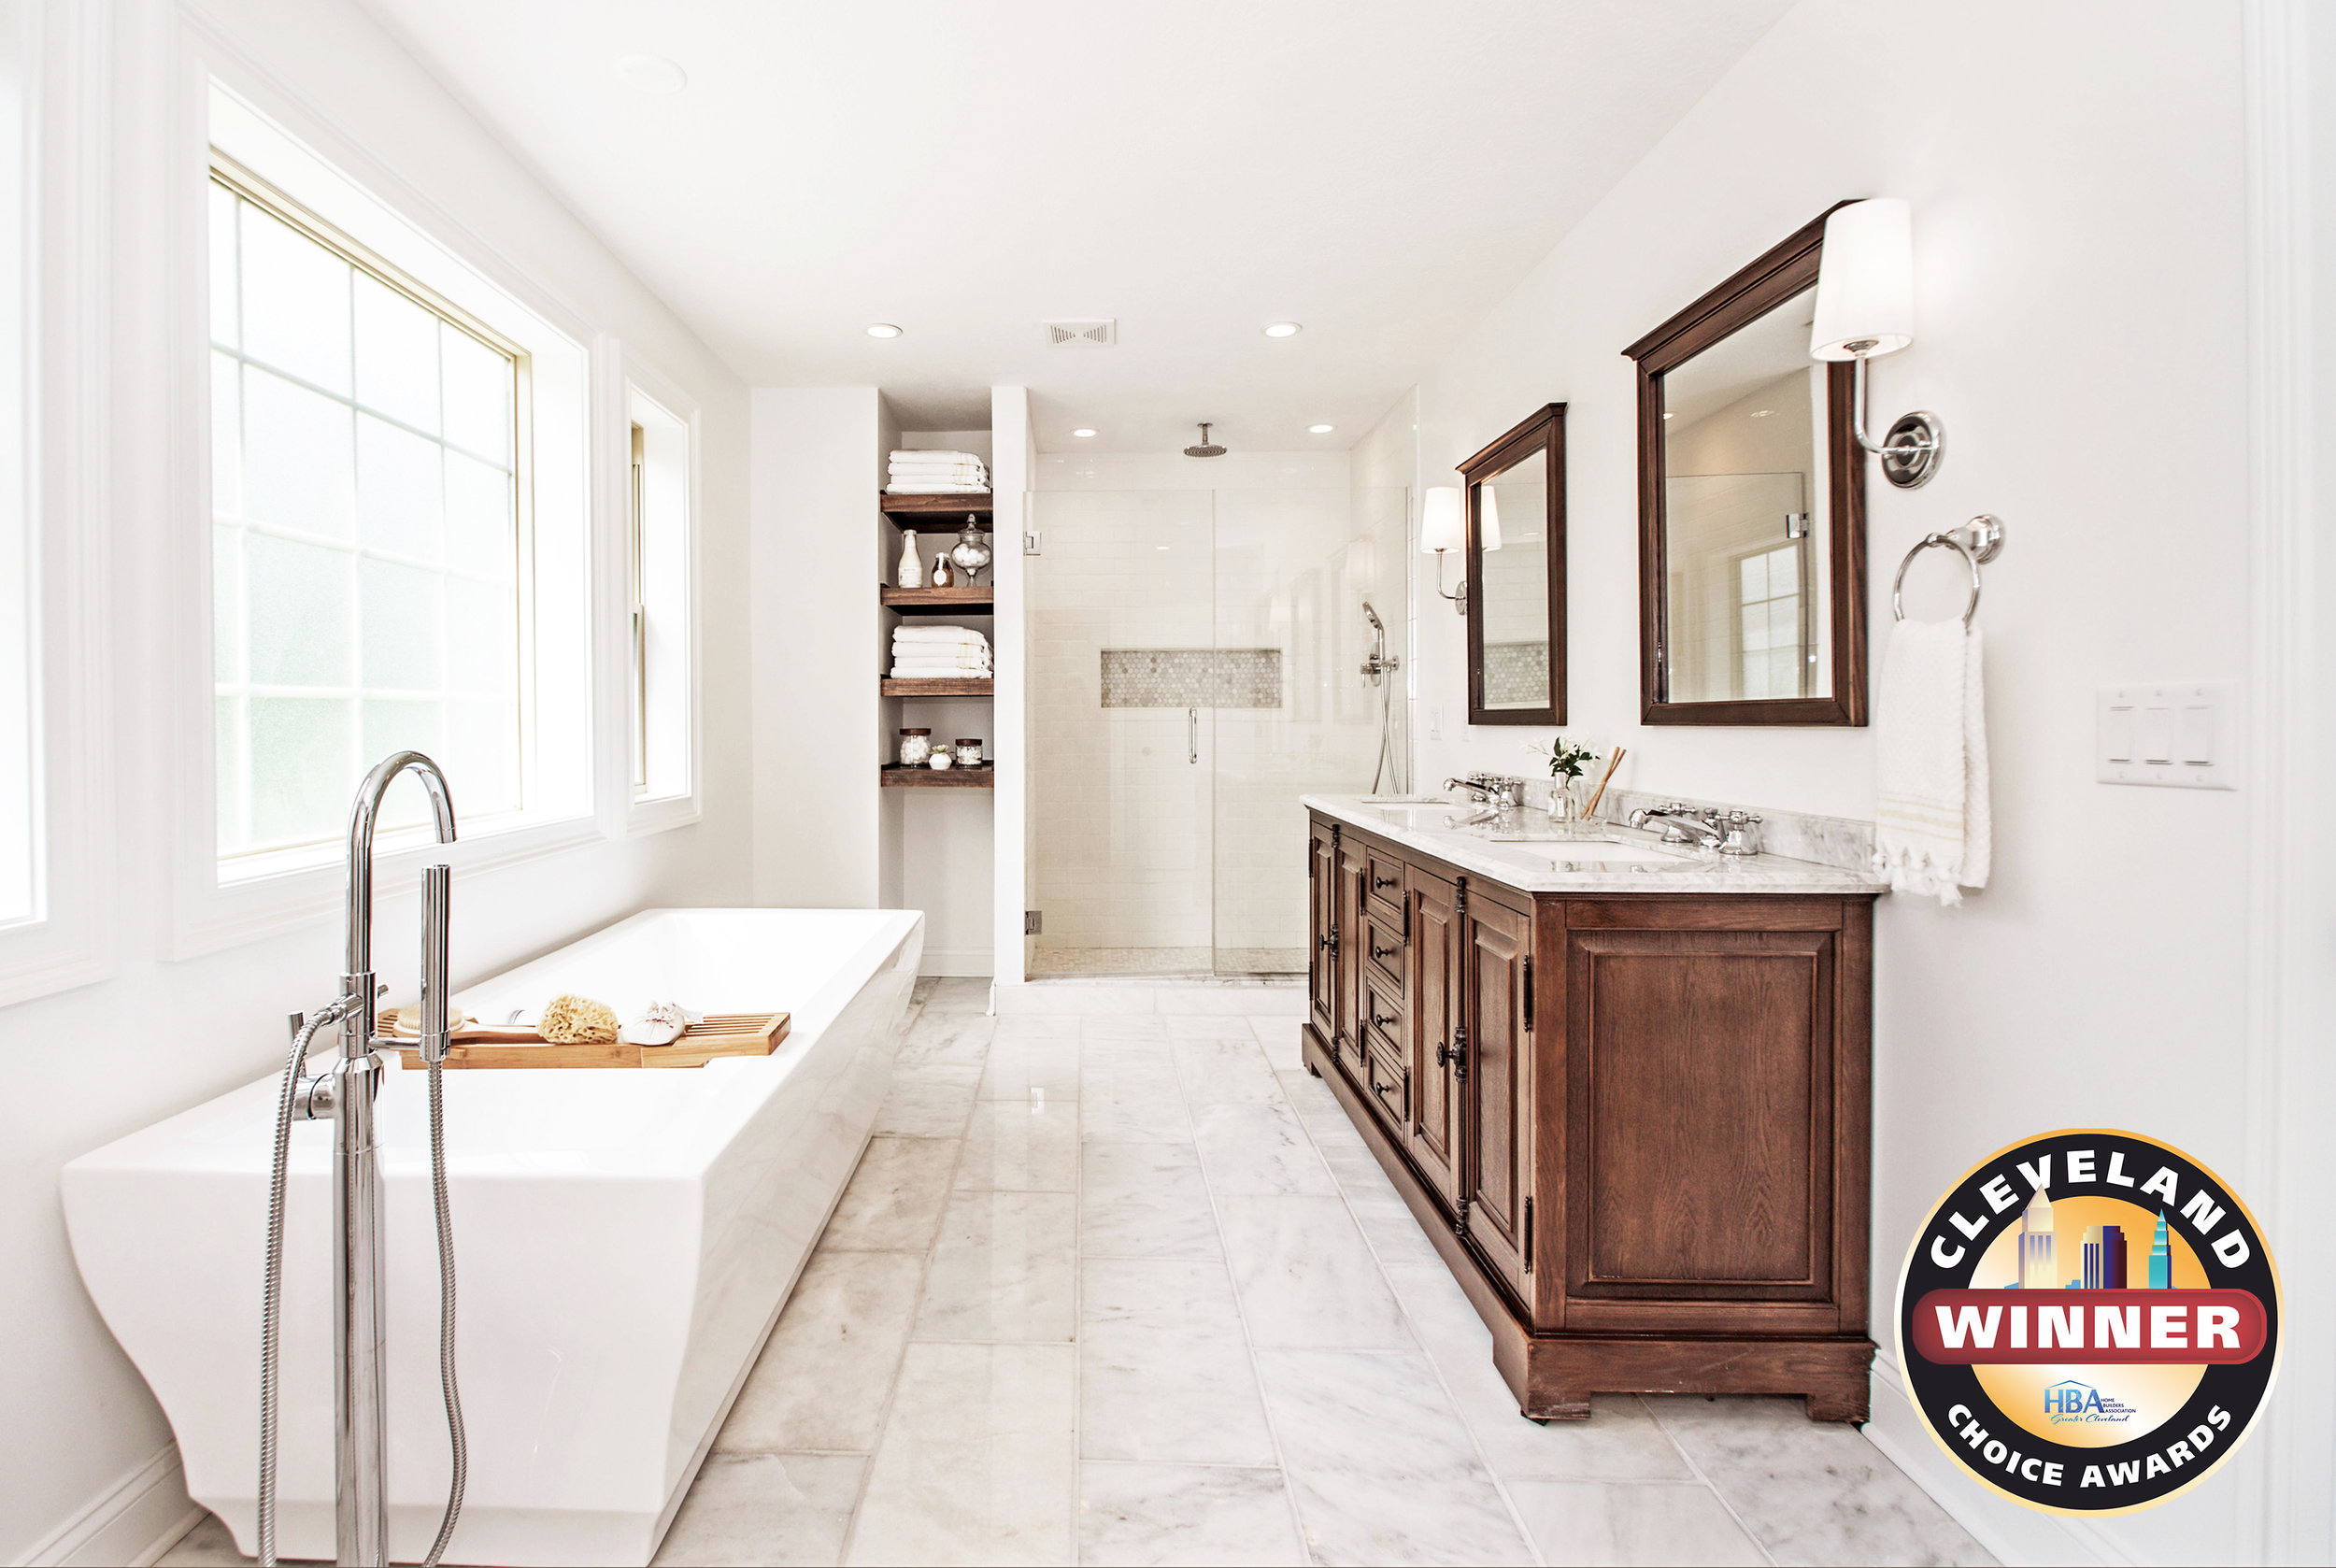 Lincoln_28401 Master Bath_Win.jpg